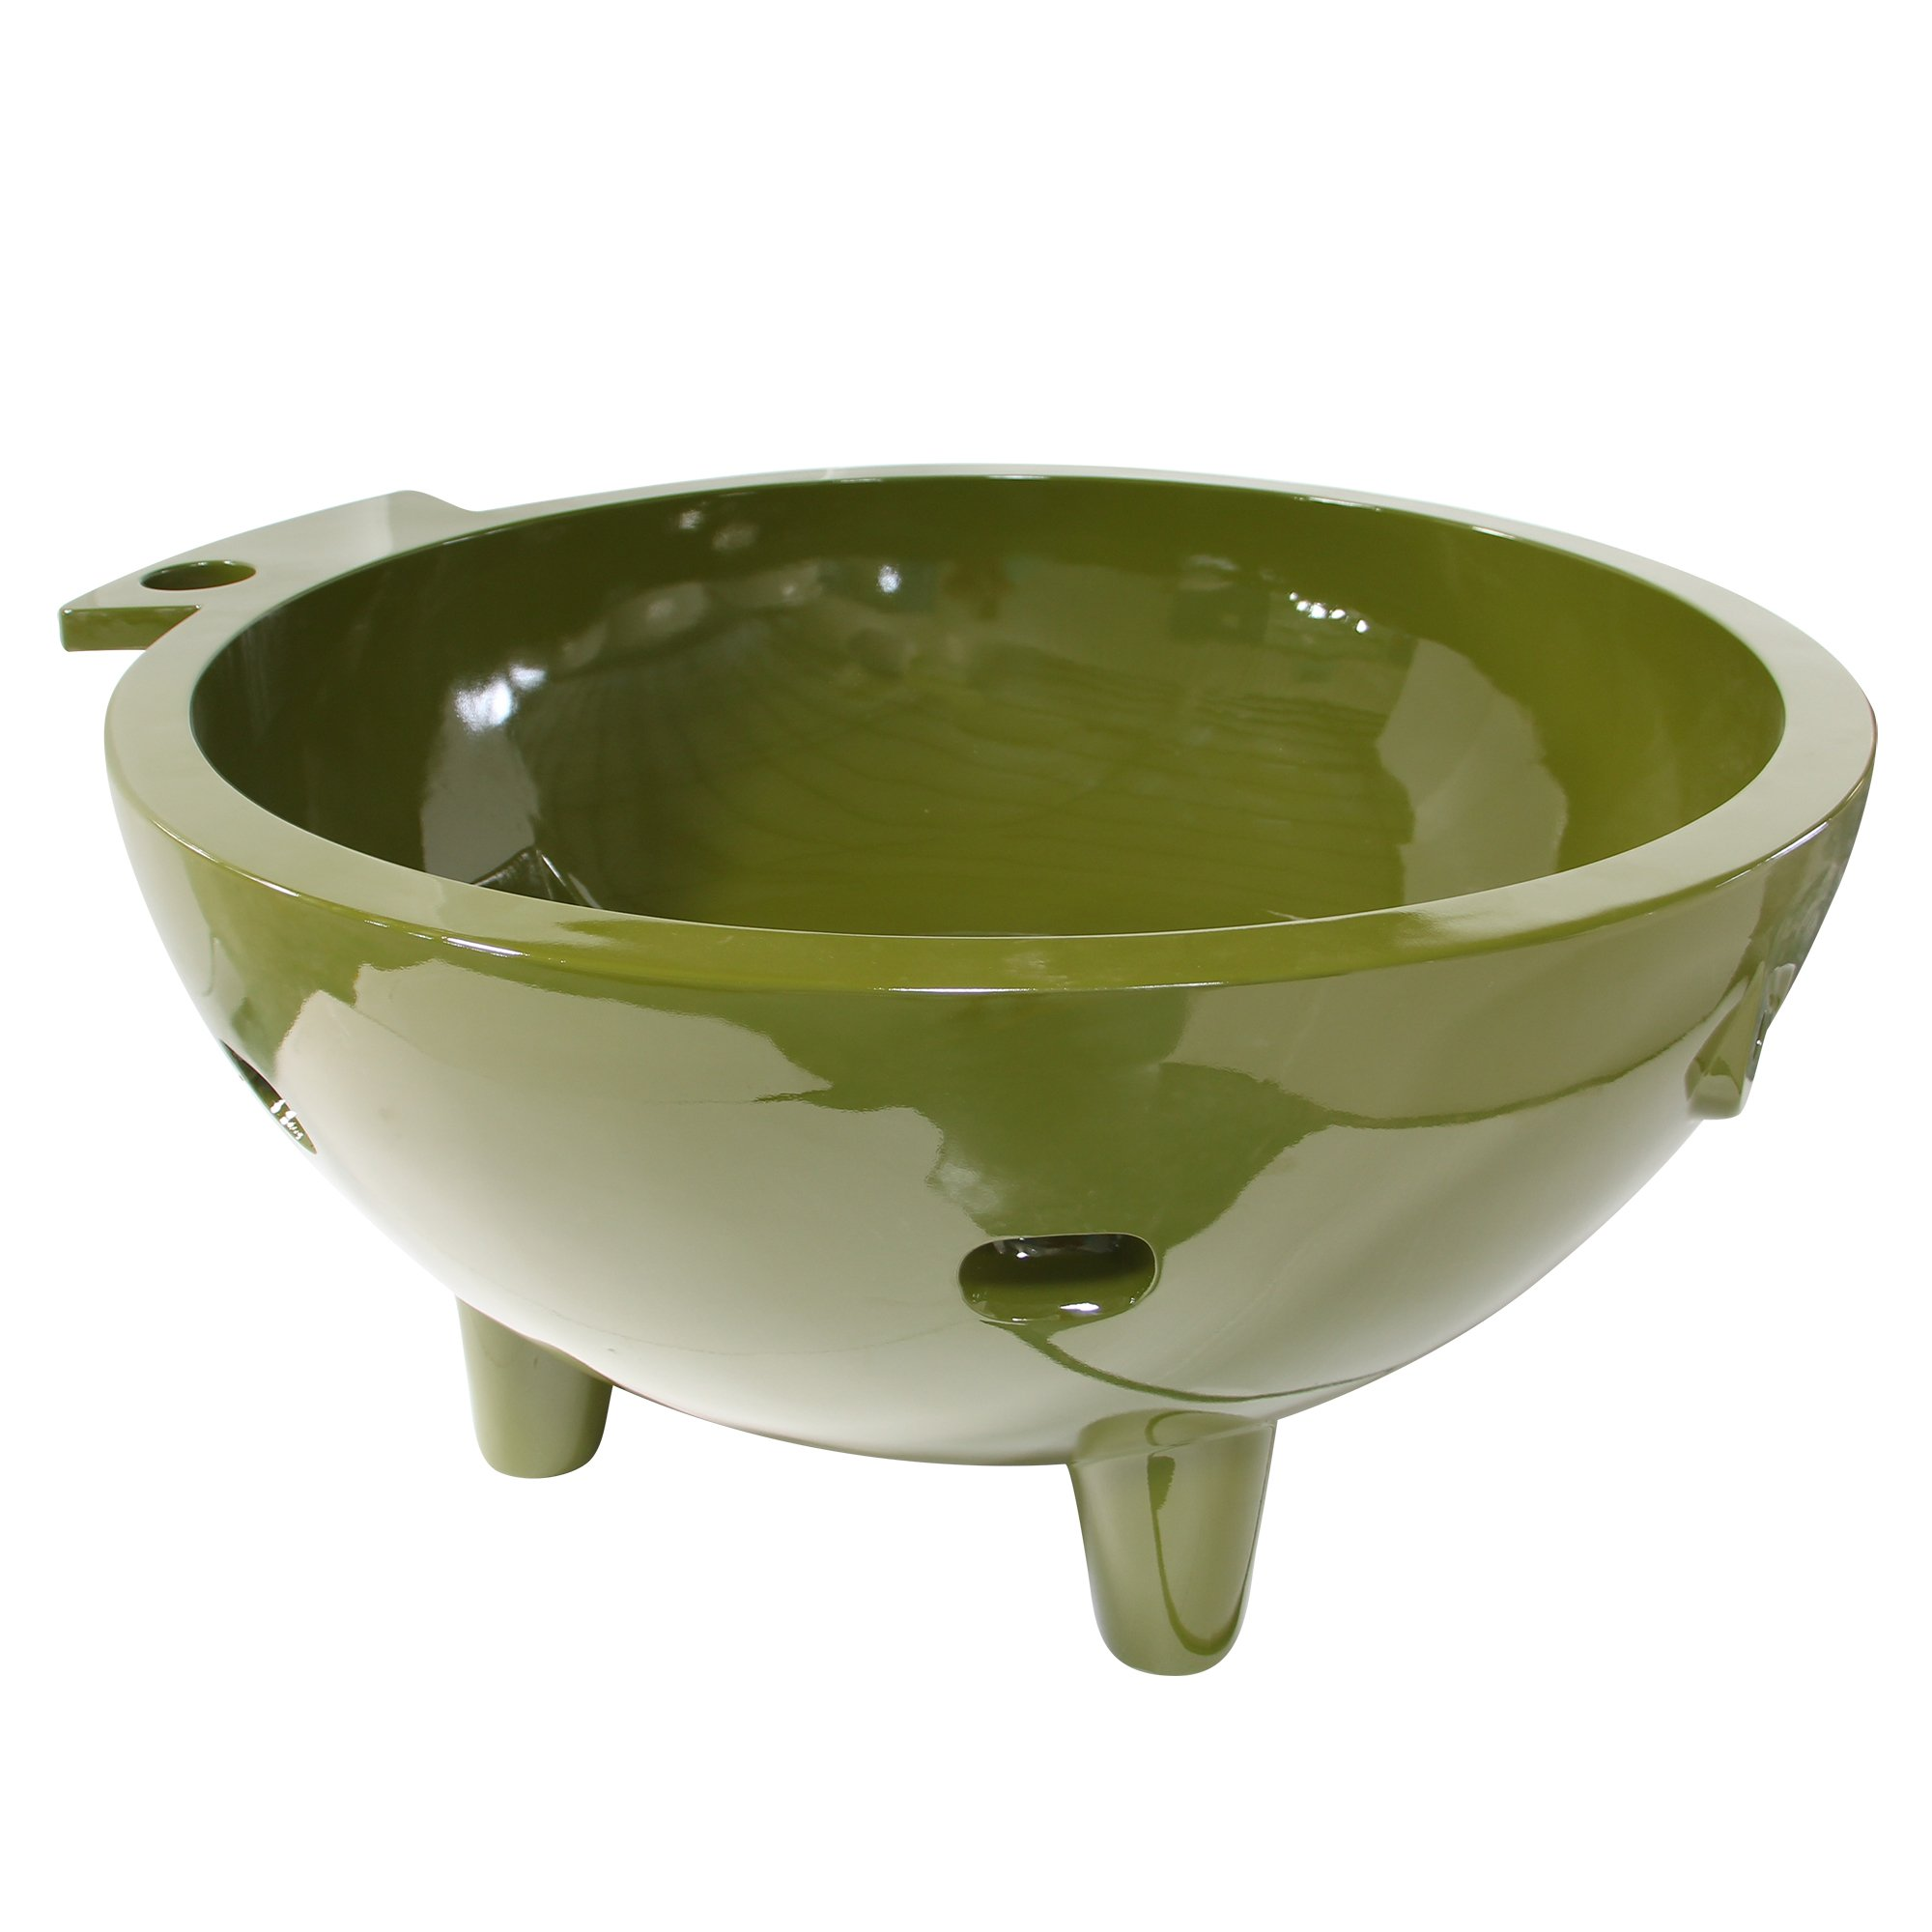 ALFI brand  FireHotTub-OG Round Fire Burning Portable Outdoor Fiberglass Soaking Hot Tub, Olive Green